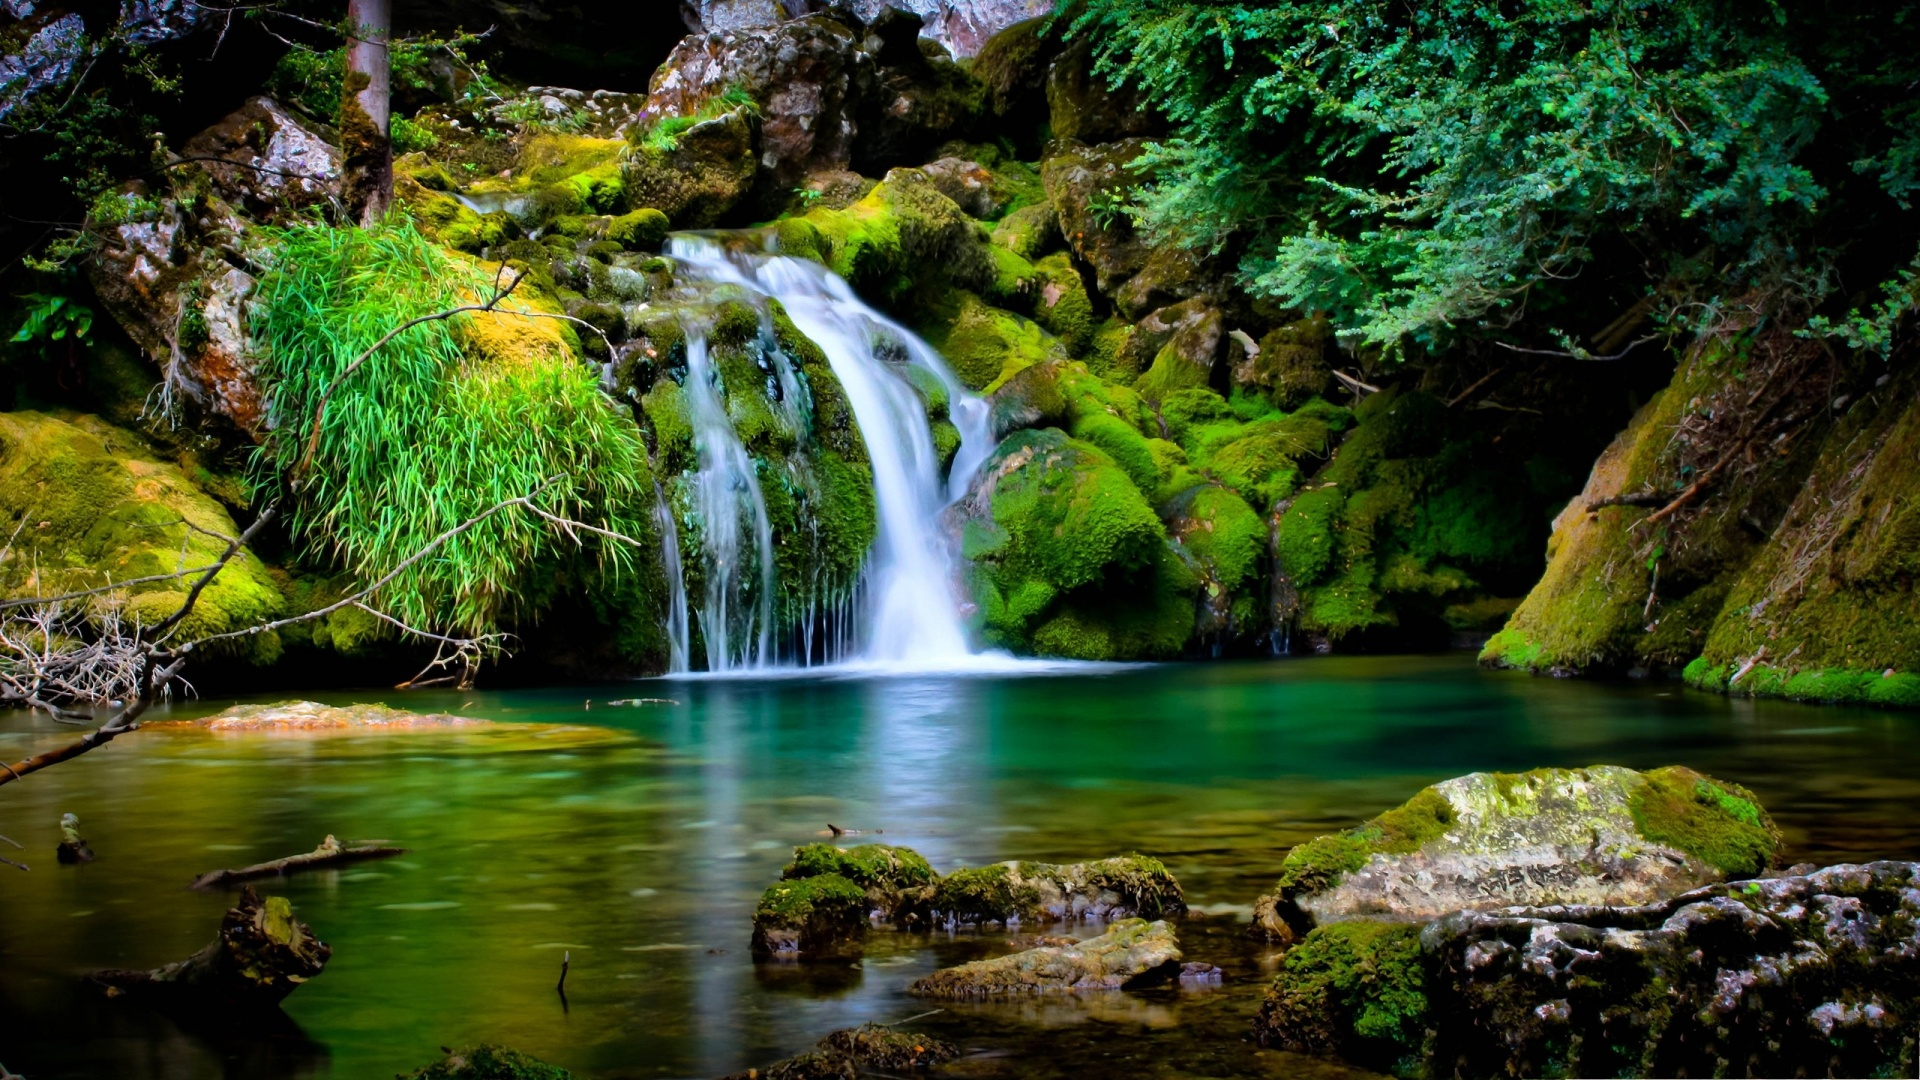 http://74211.com/wallpaper/picture_big/waterfall-scenery_2013-top-10-scenery-images-2.jpg